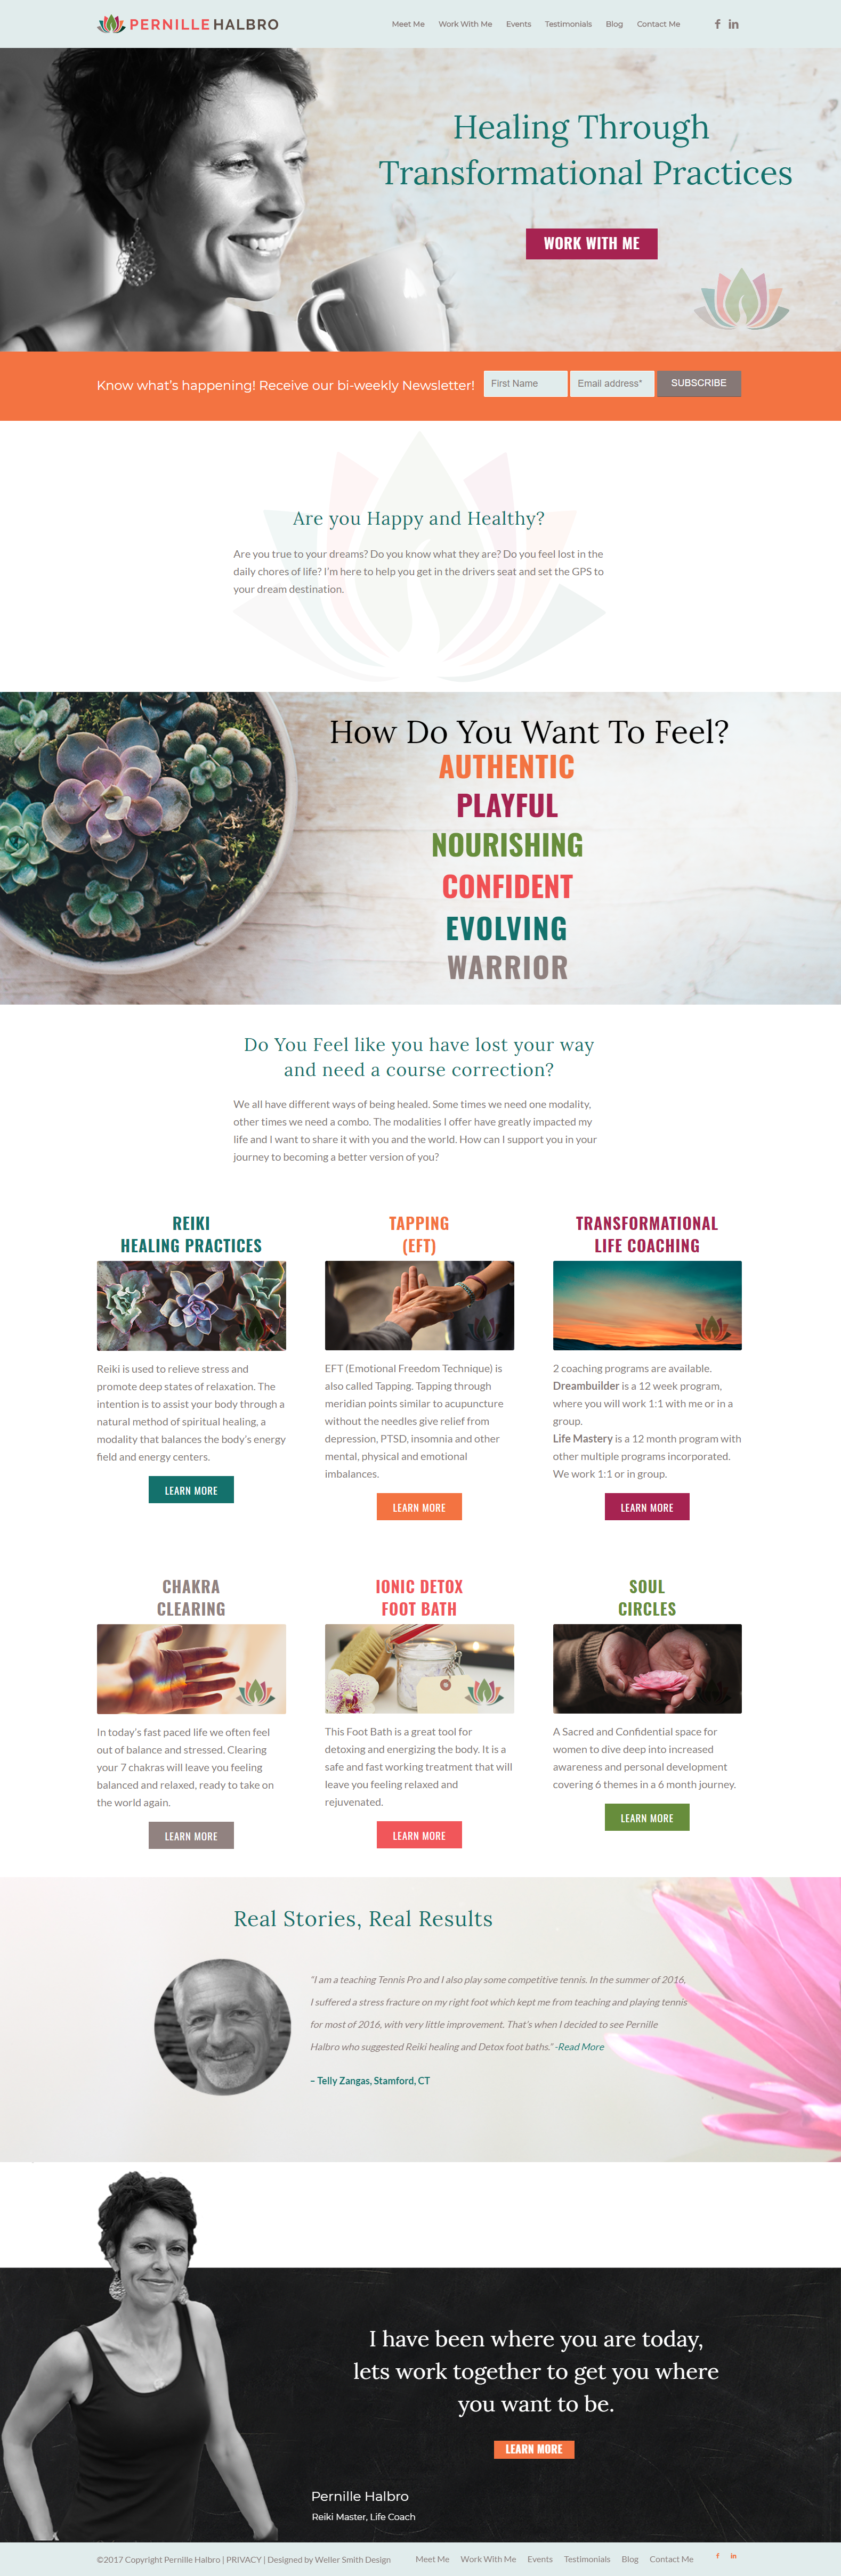 Pernille Halbro Wellness Coach Branding and Website Home Page